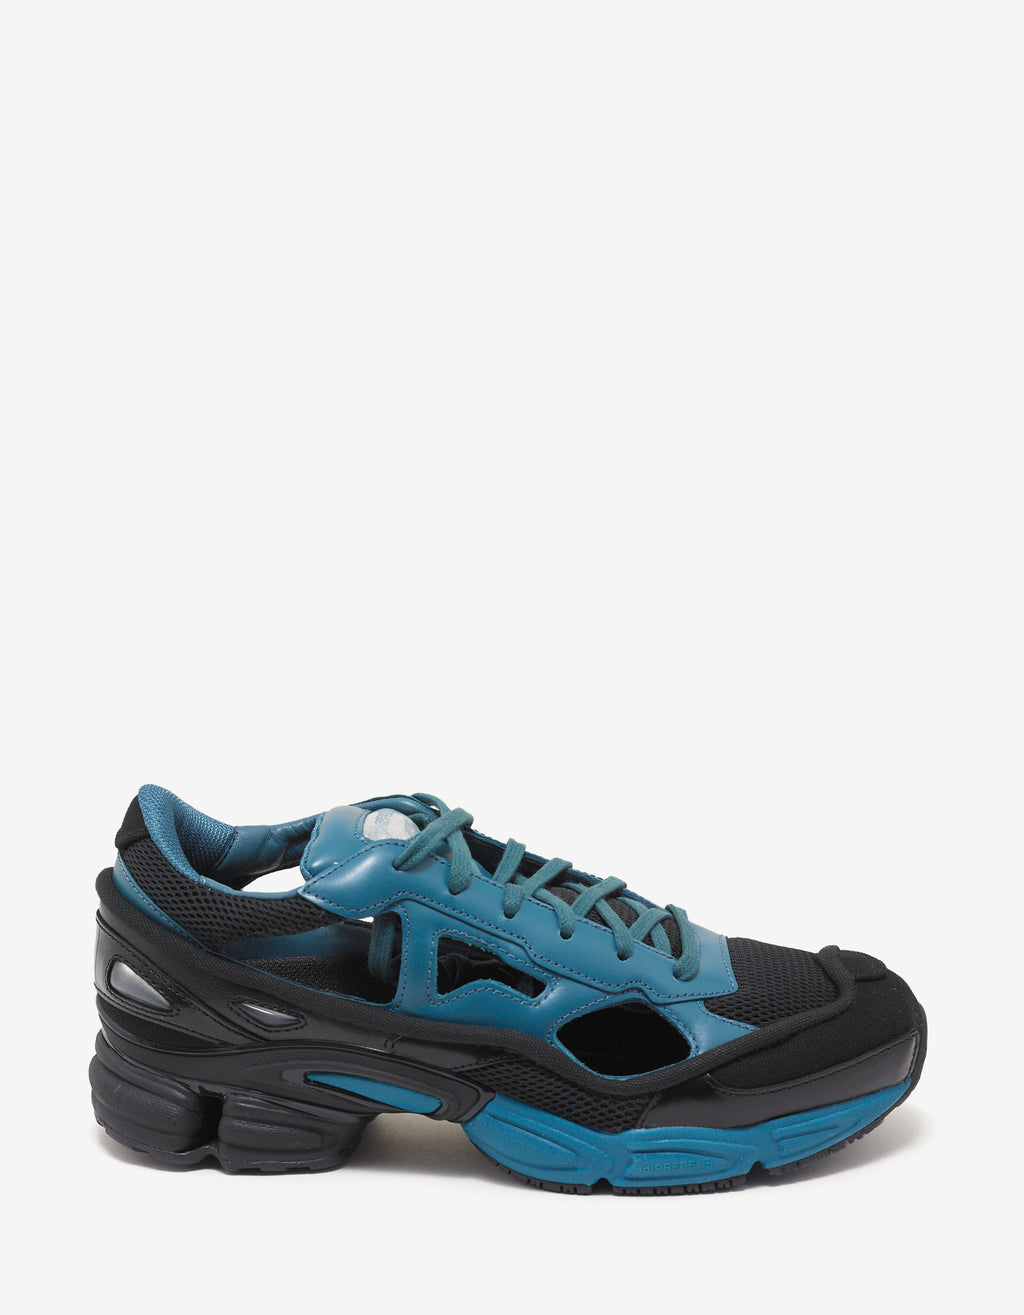 Replicant Ozweego Black & Blue Trainers